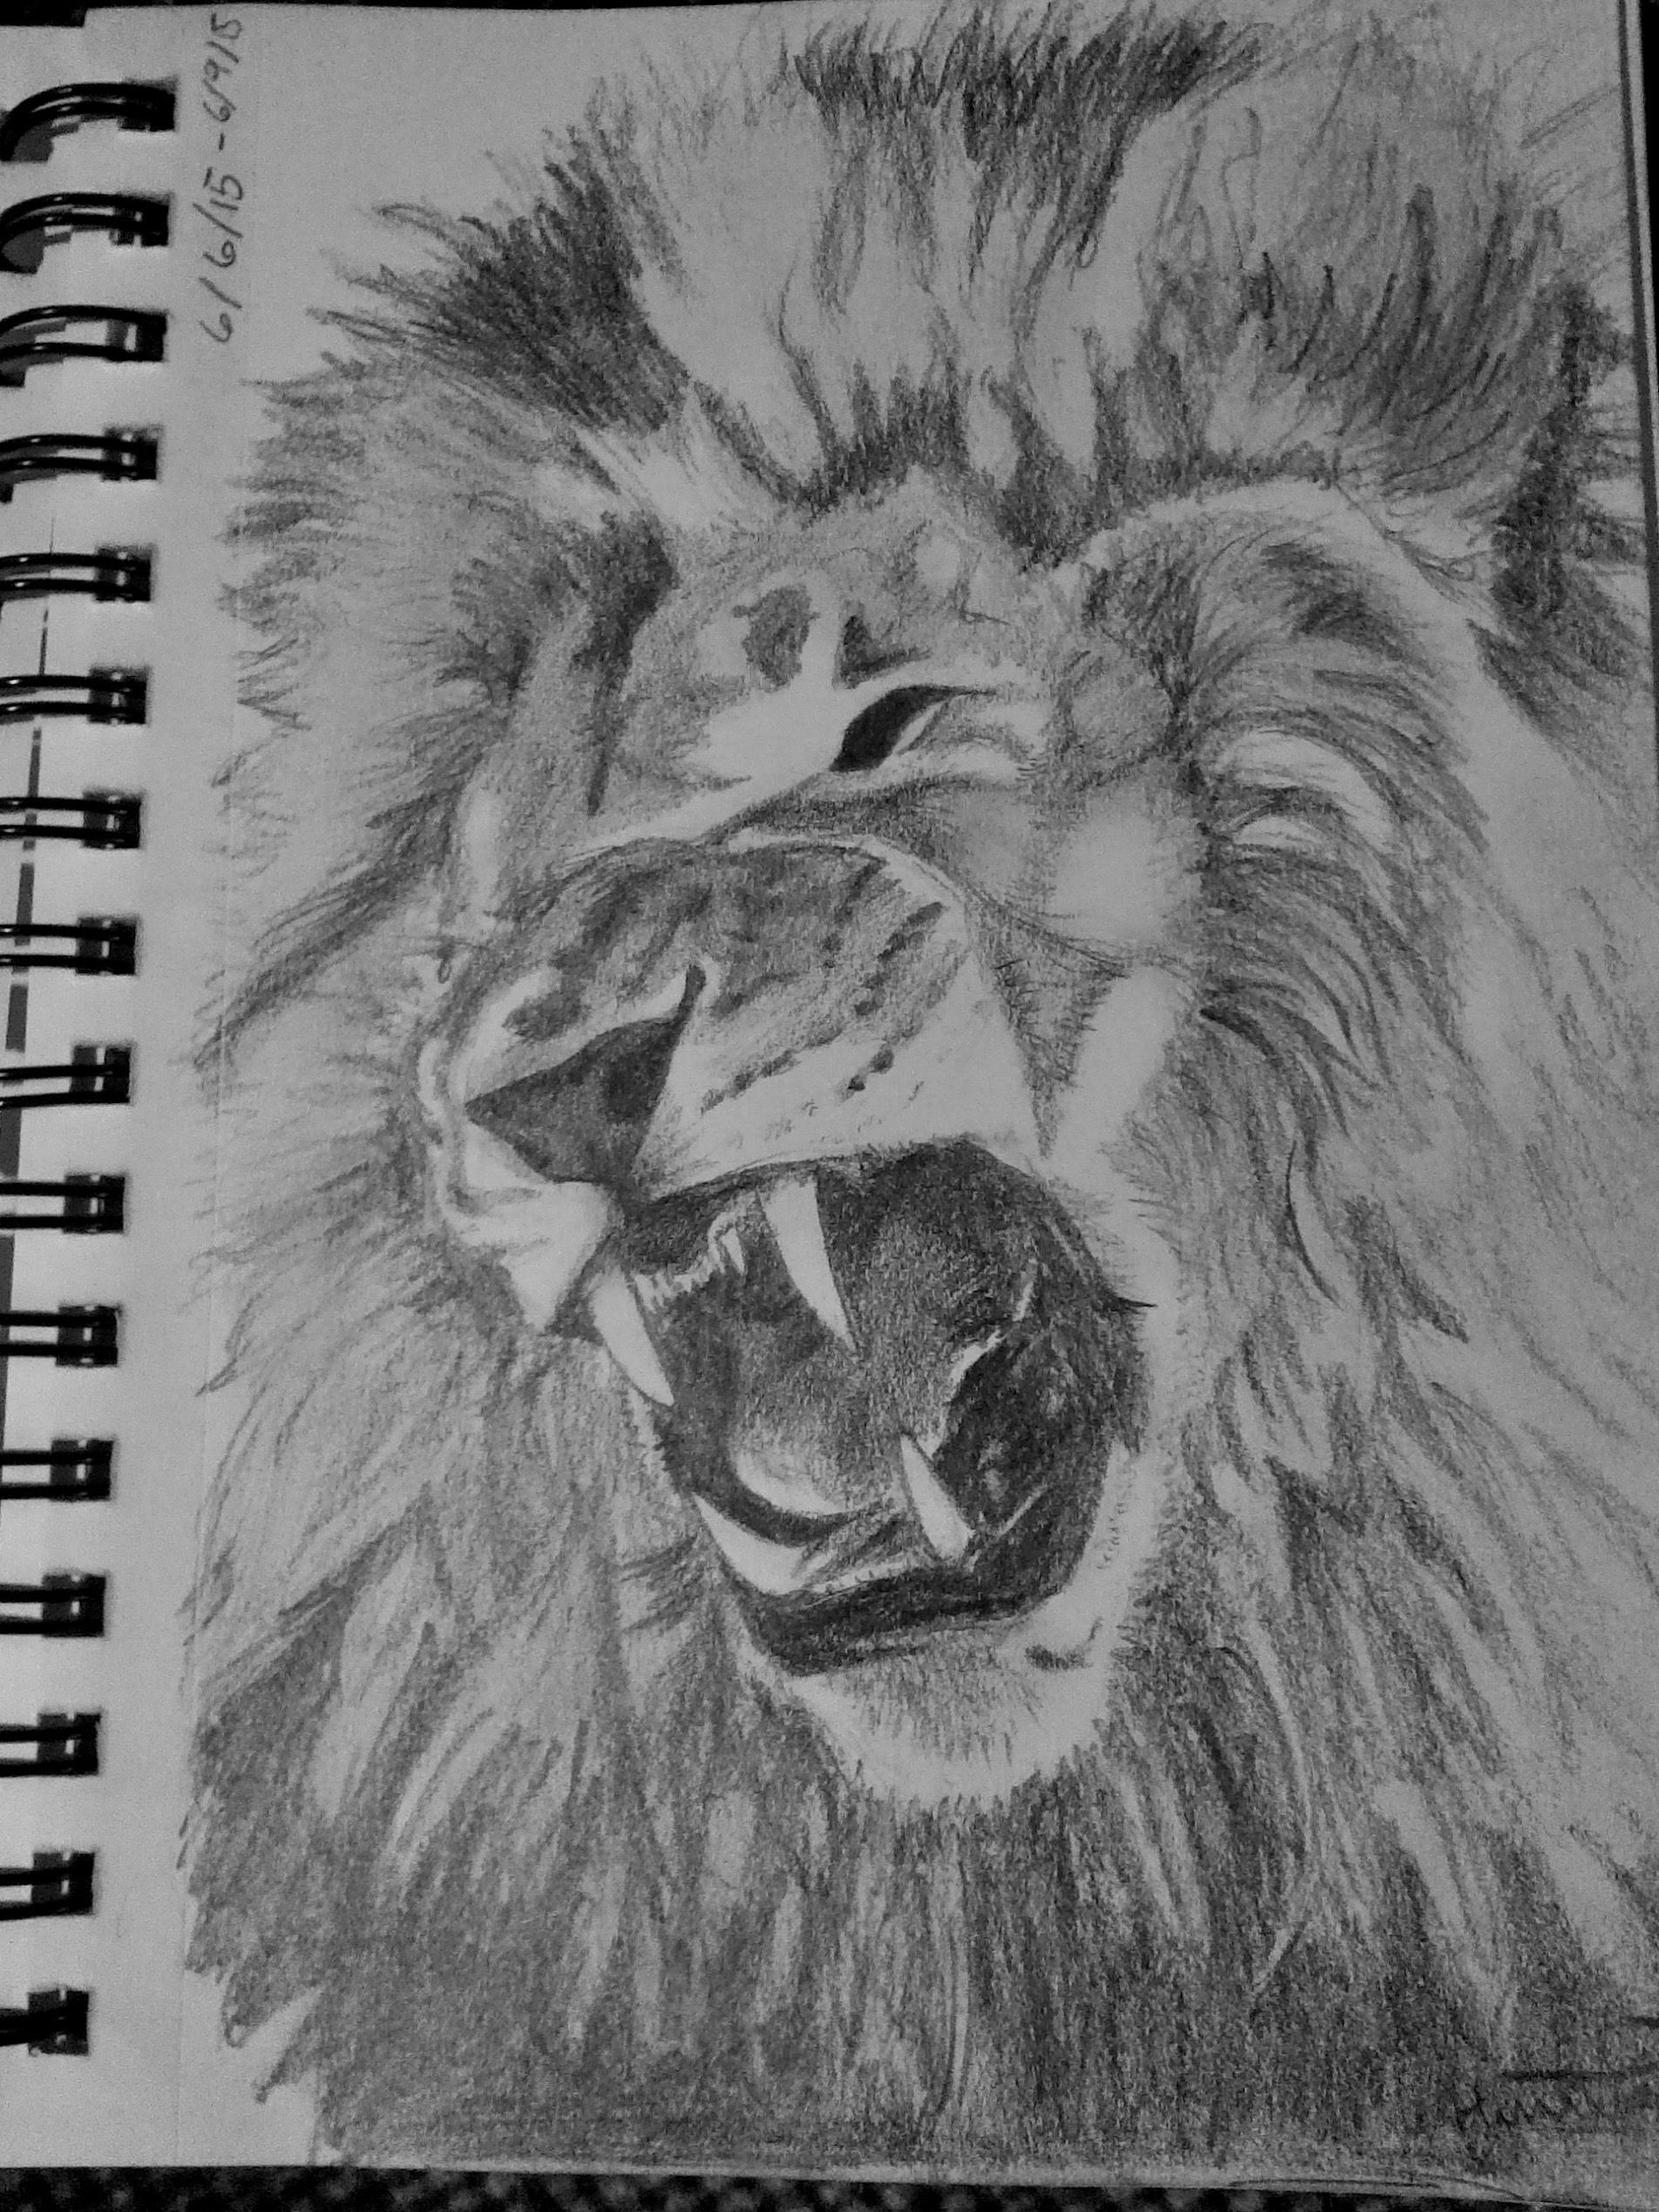 Roaring lion pencil drawing by hannah thuemmel 2015